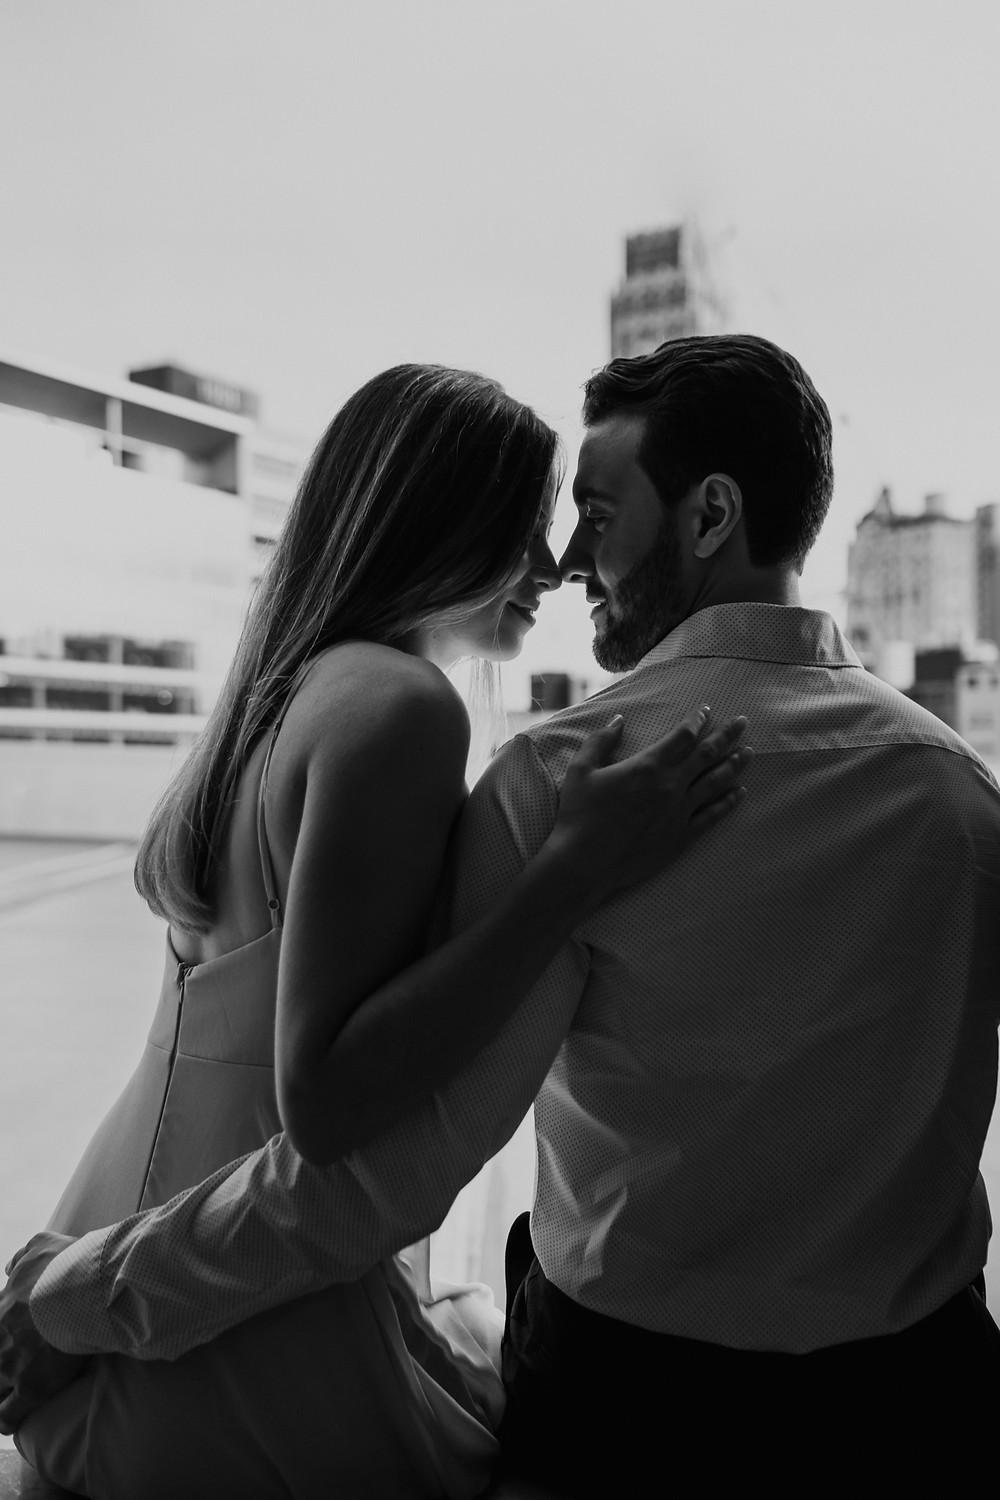 Black and white silhouette of couple. Photographed by Nicole Leanne Photography.